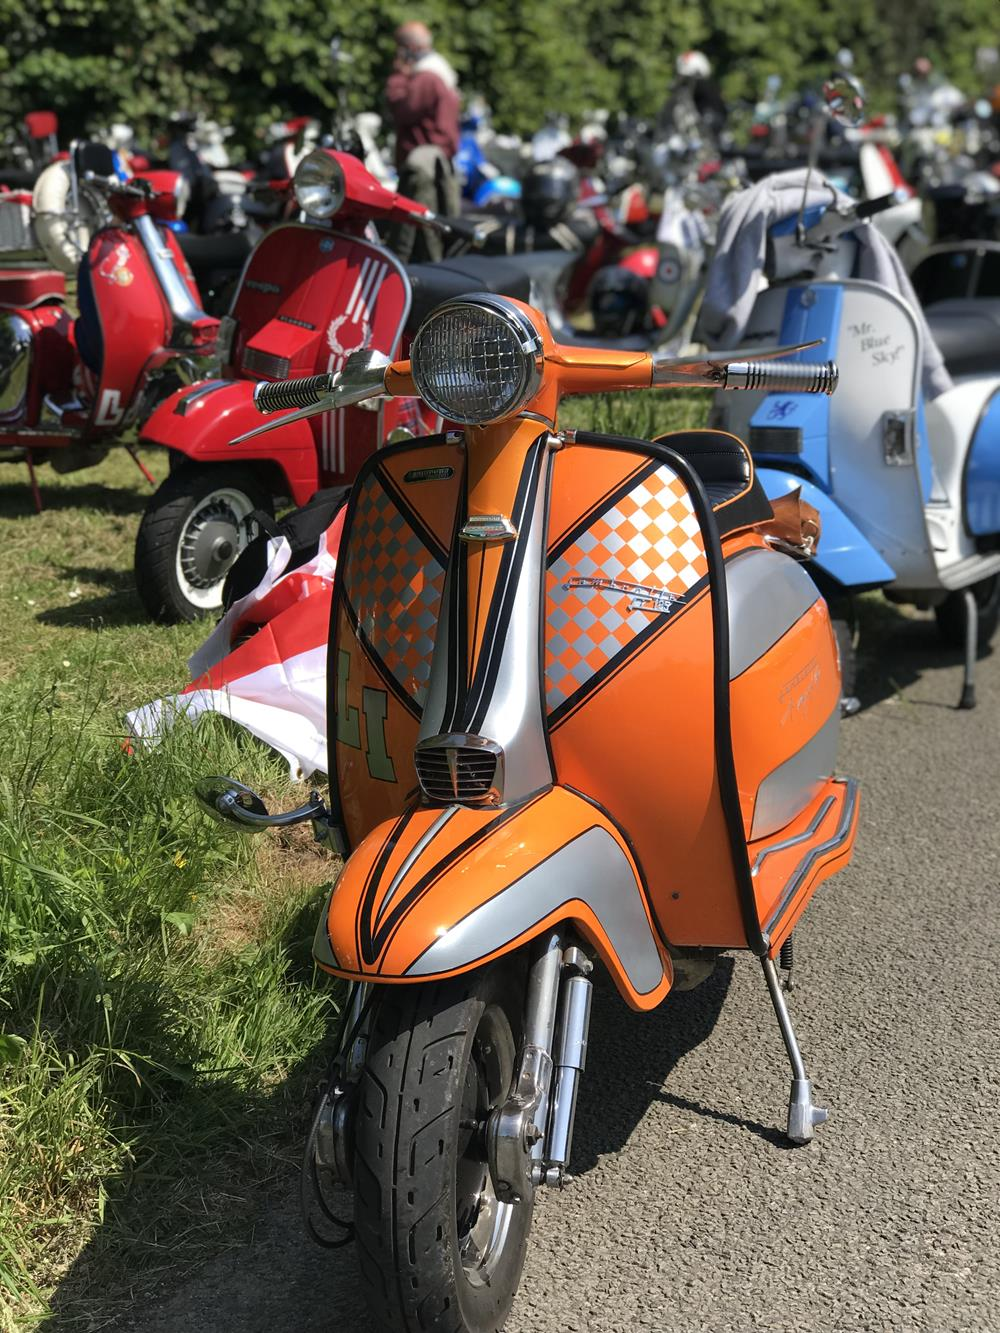 Orange LI Lambretta scooter with other scooters in the background